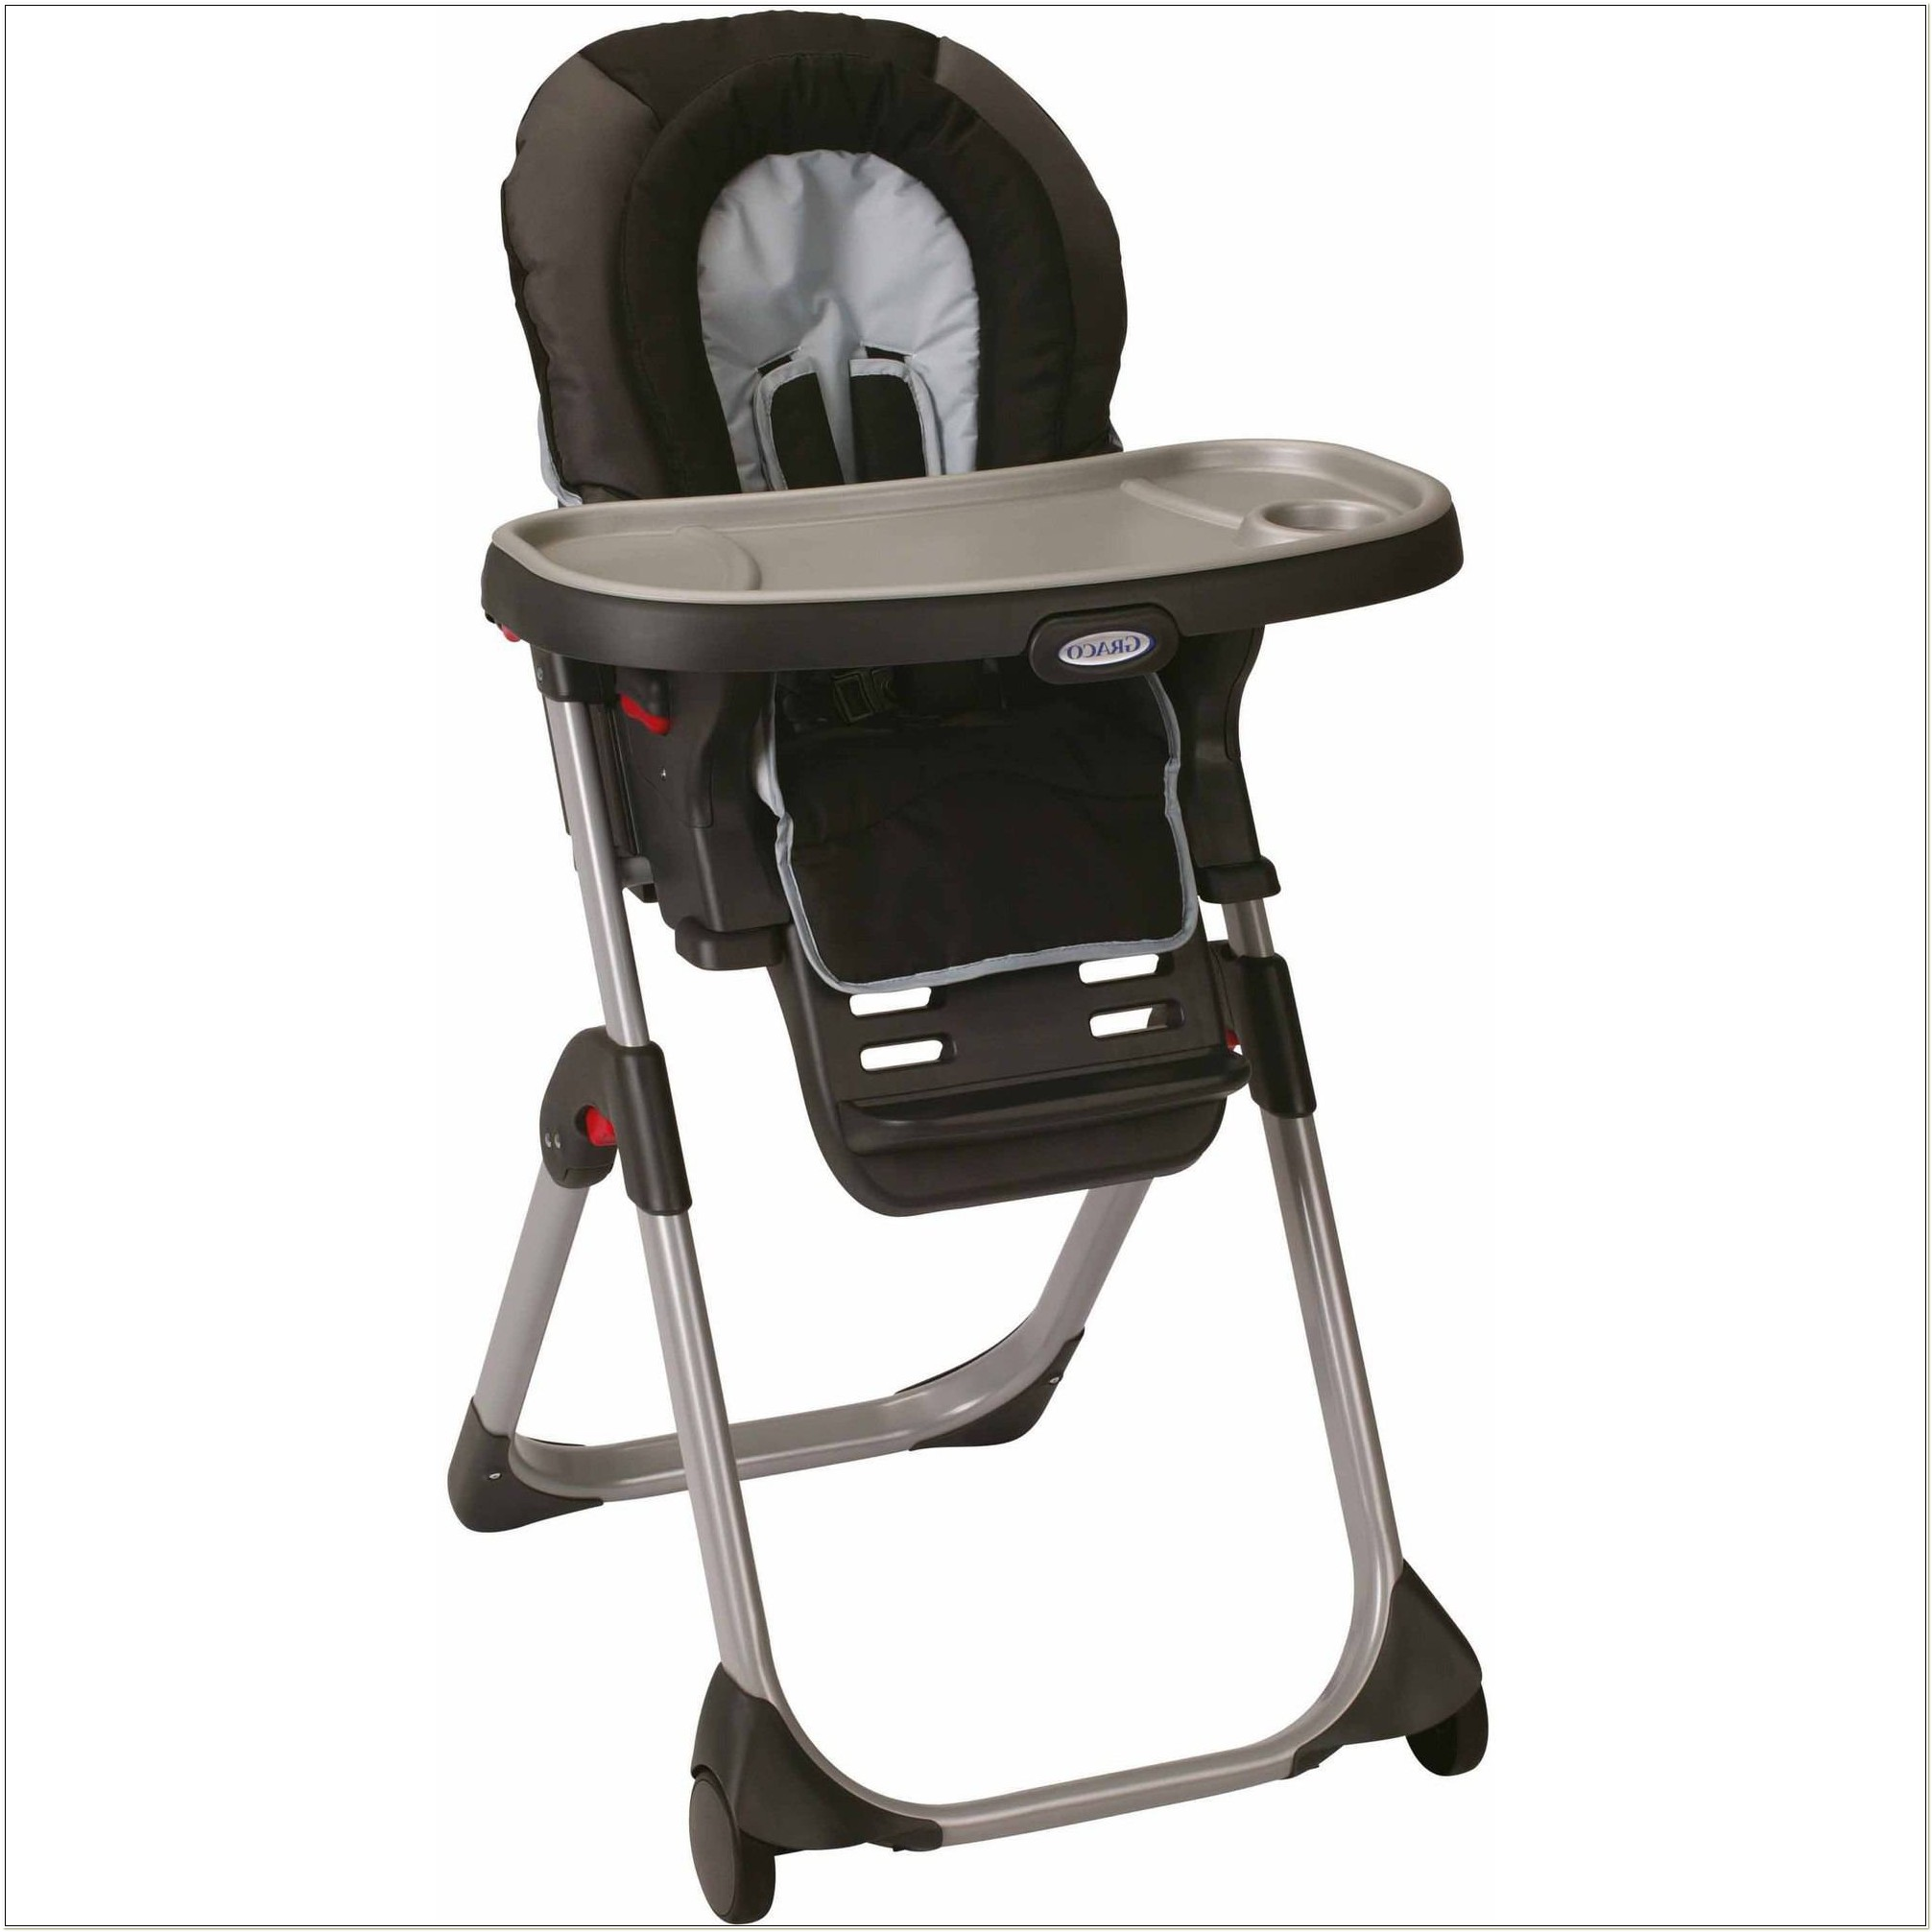 Graco Duodiner Lx High Chair Etho